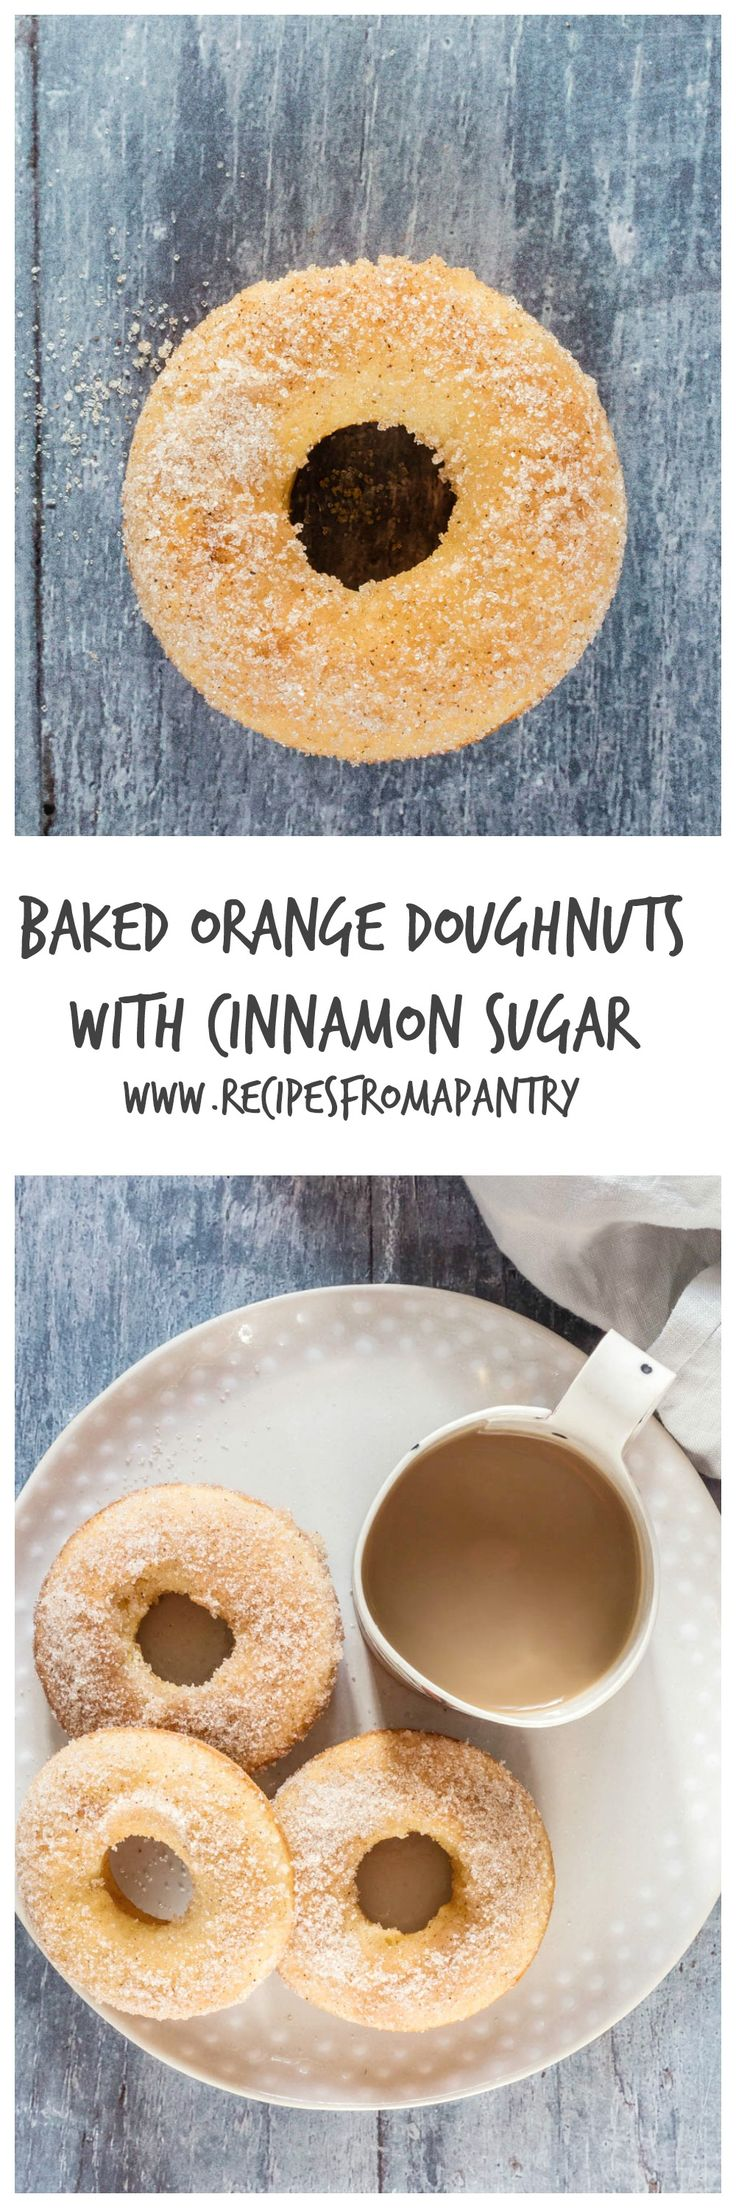 Treat yourself with these *baked orange doughnuts with cinnamon sugar*   Recipes From A Pantry via @recipespantry